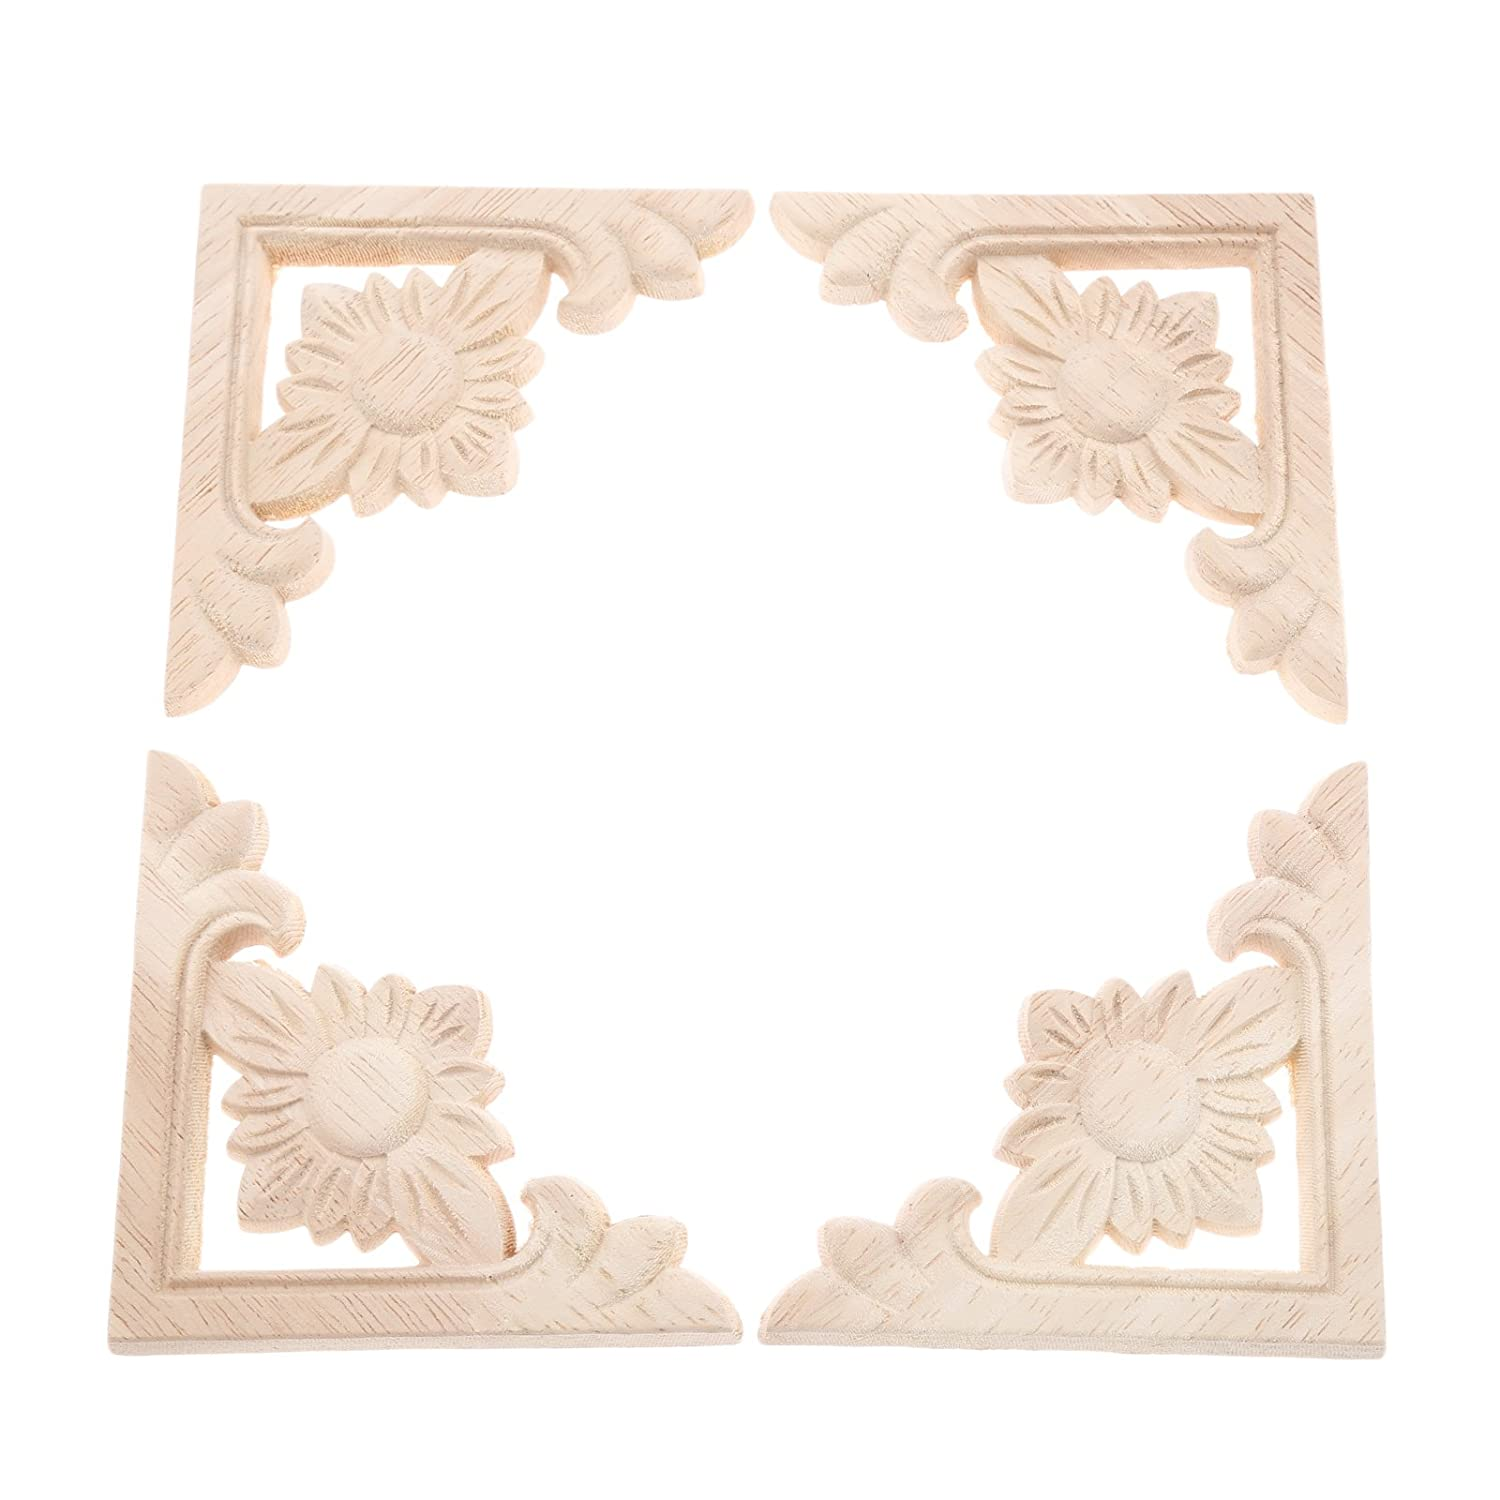 4pcs Vintage Wood Carved Decal Corner Onlay Applique Frame Furniture Wall Unpainted for Home Cabinet Door Decor Craft 9x9cm